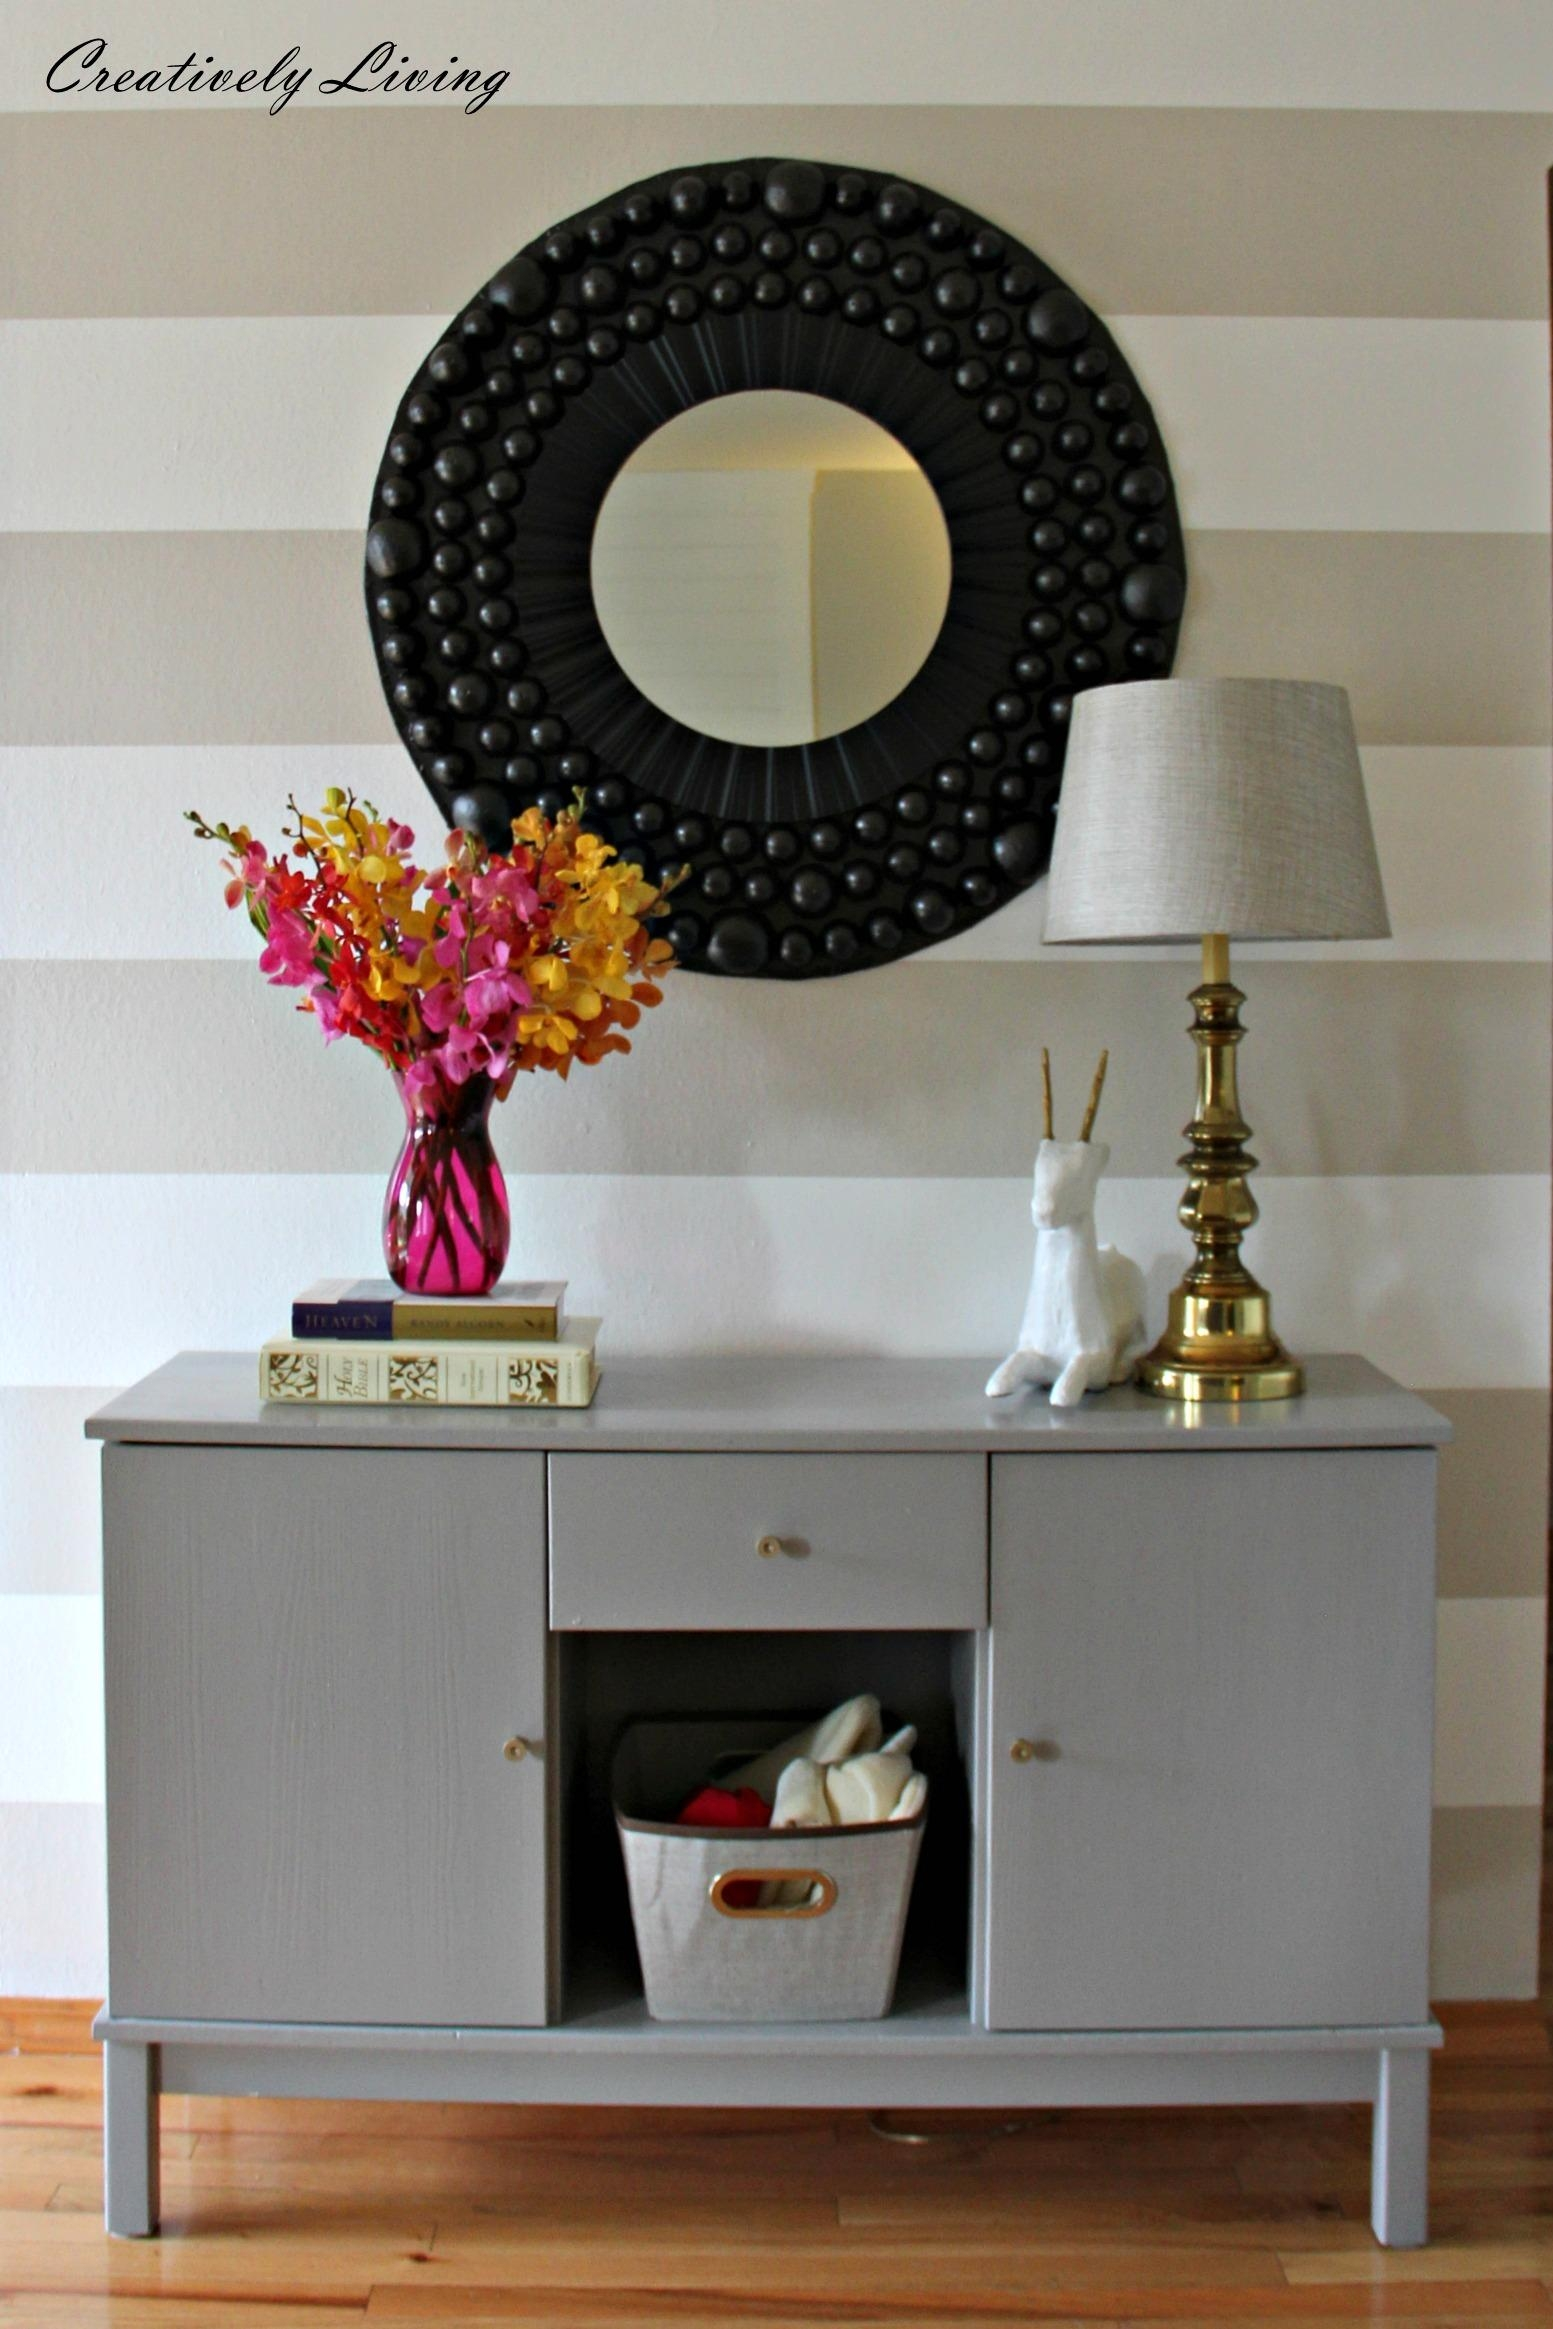 Diy Entryway Dresser Makeovercreatively Living Blog With Regard To Large Bubble Mirror (Image 13 of 20)